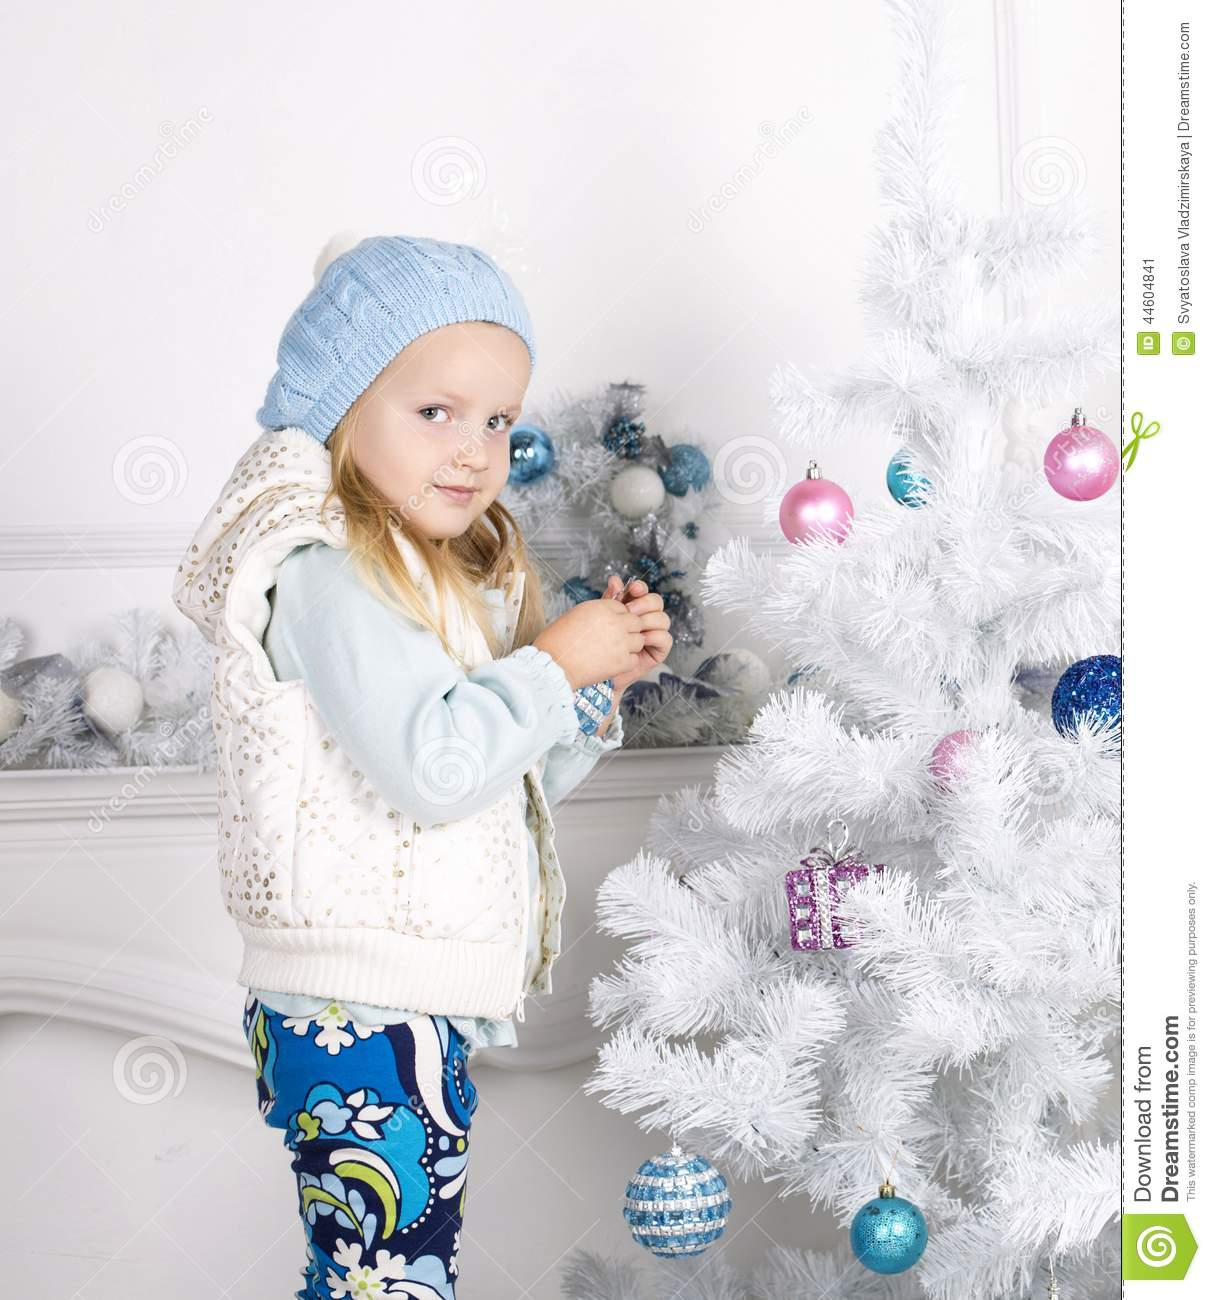 Little Girl Christmas Tree: Cute Little Girl Decorating Christmas Tree Stock Image